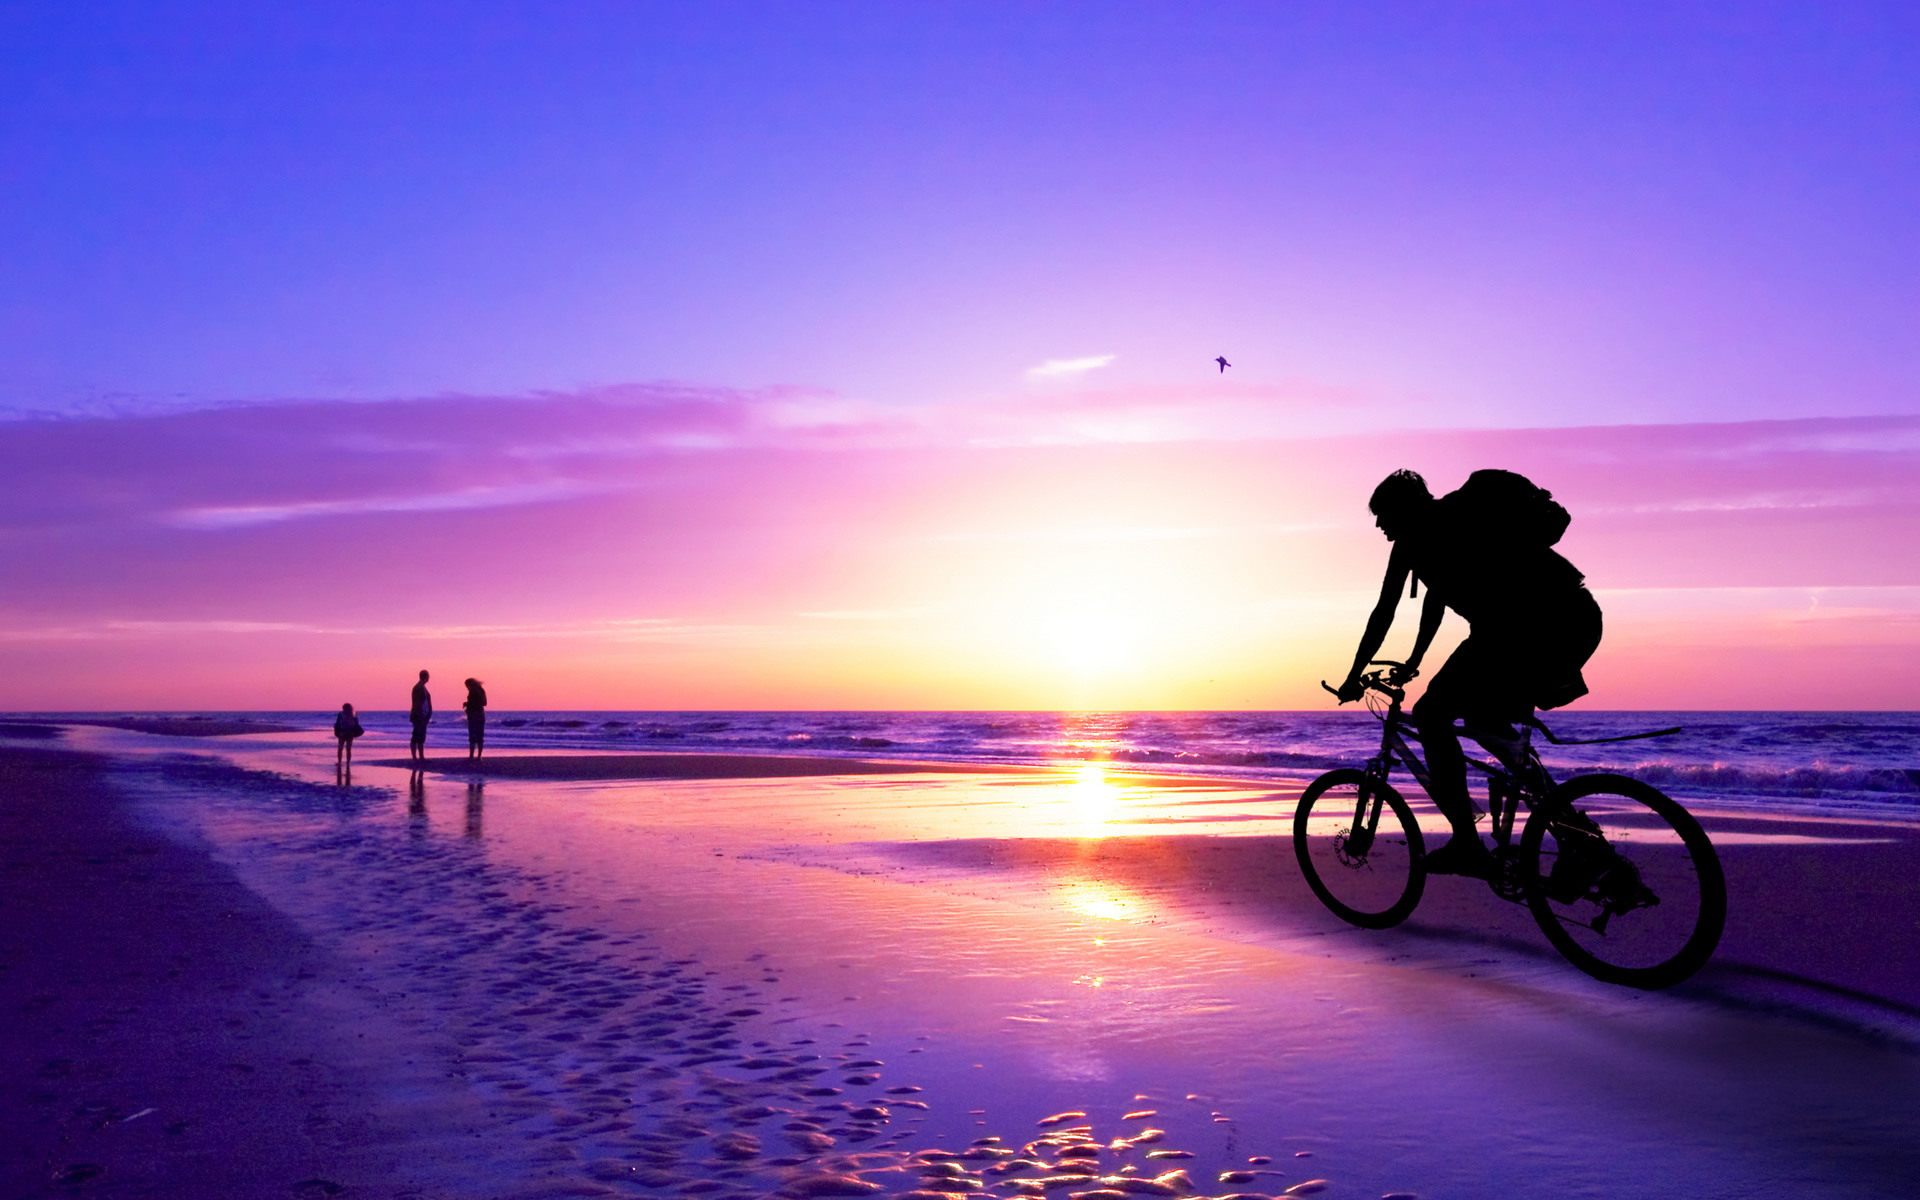 vehicles bicycles bikes sports people nature ocean sea seascape waves beaches path trail sidewalk boardwalk sky clouds sunset sunrise color